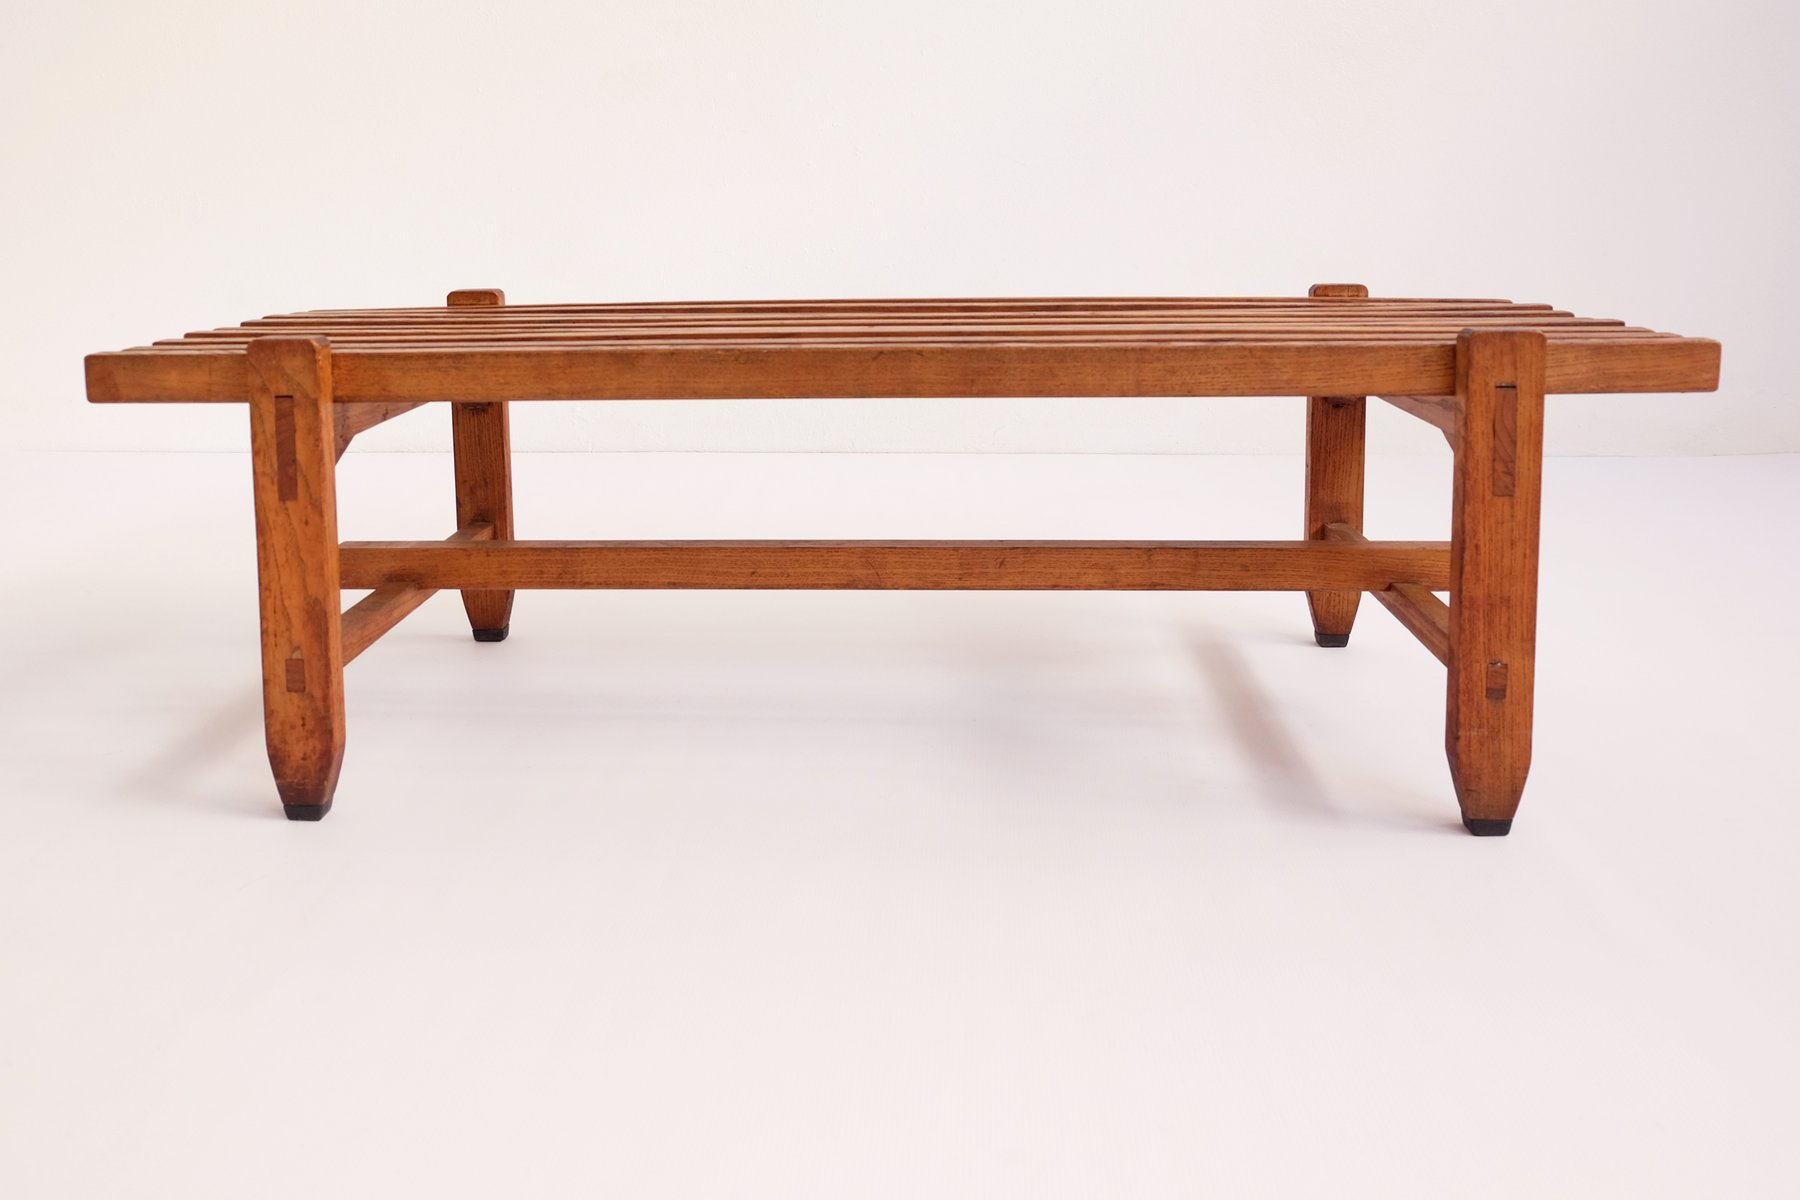 Old Wooden Bench For Sale